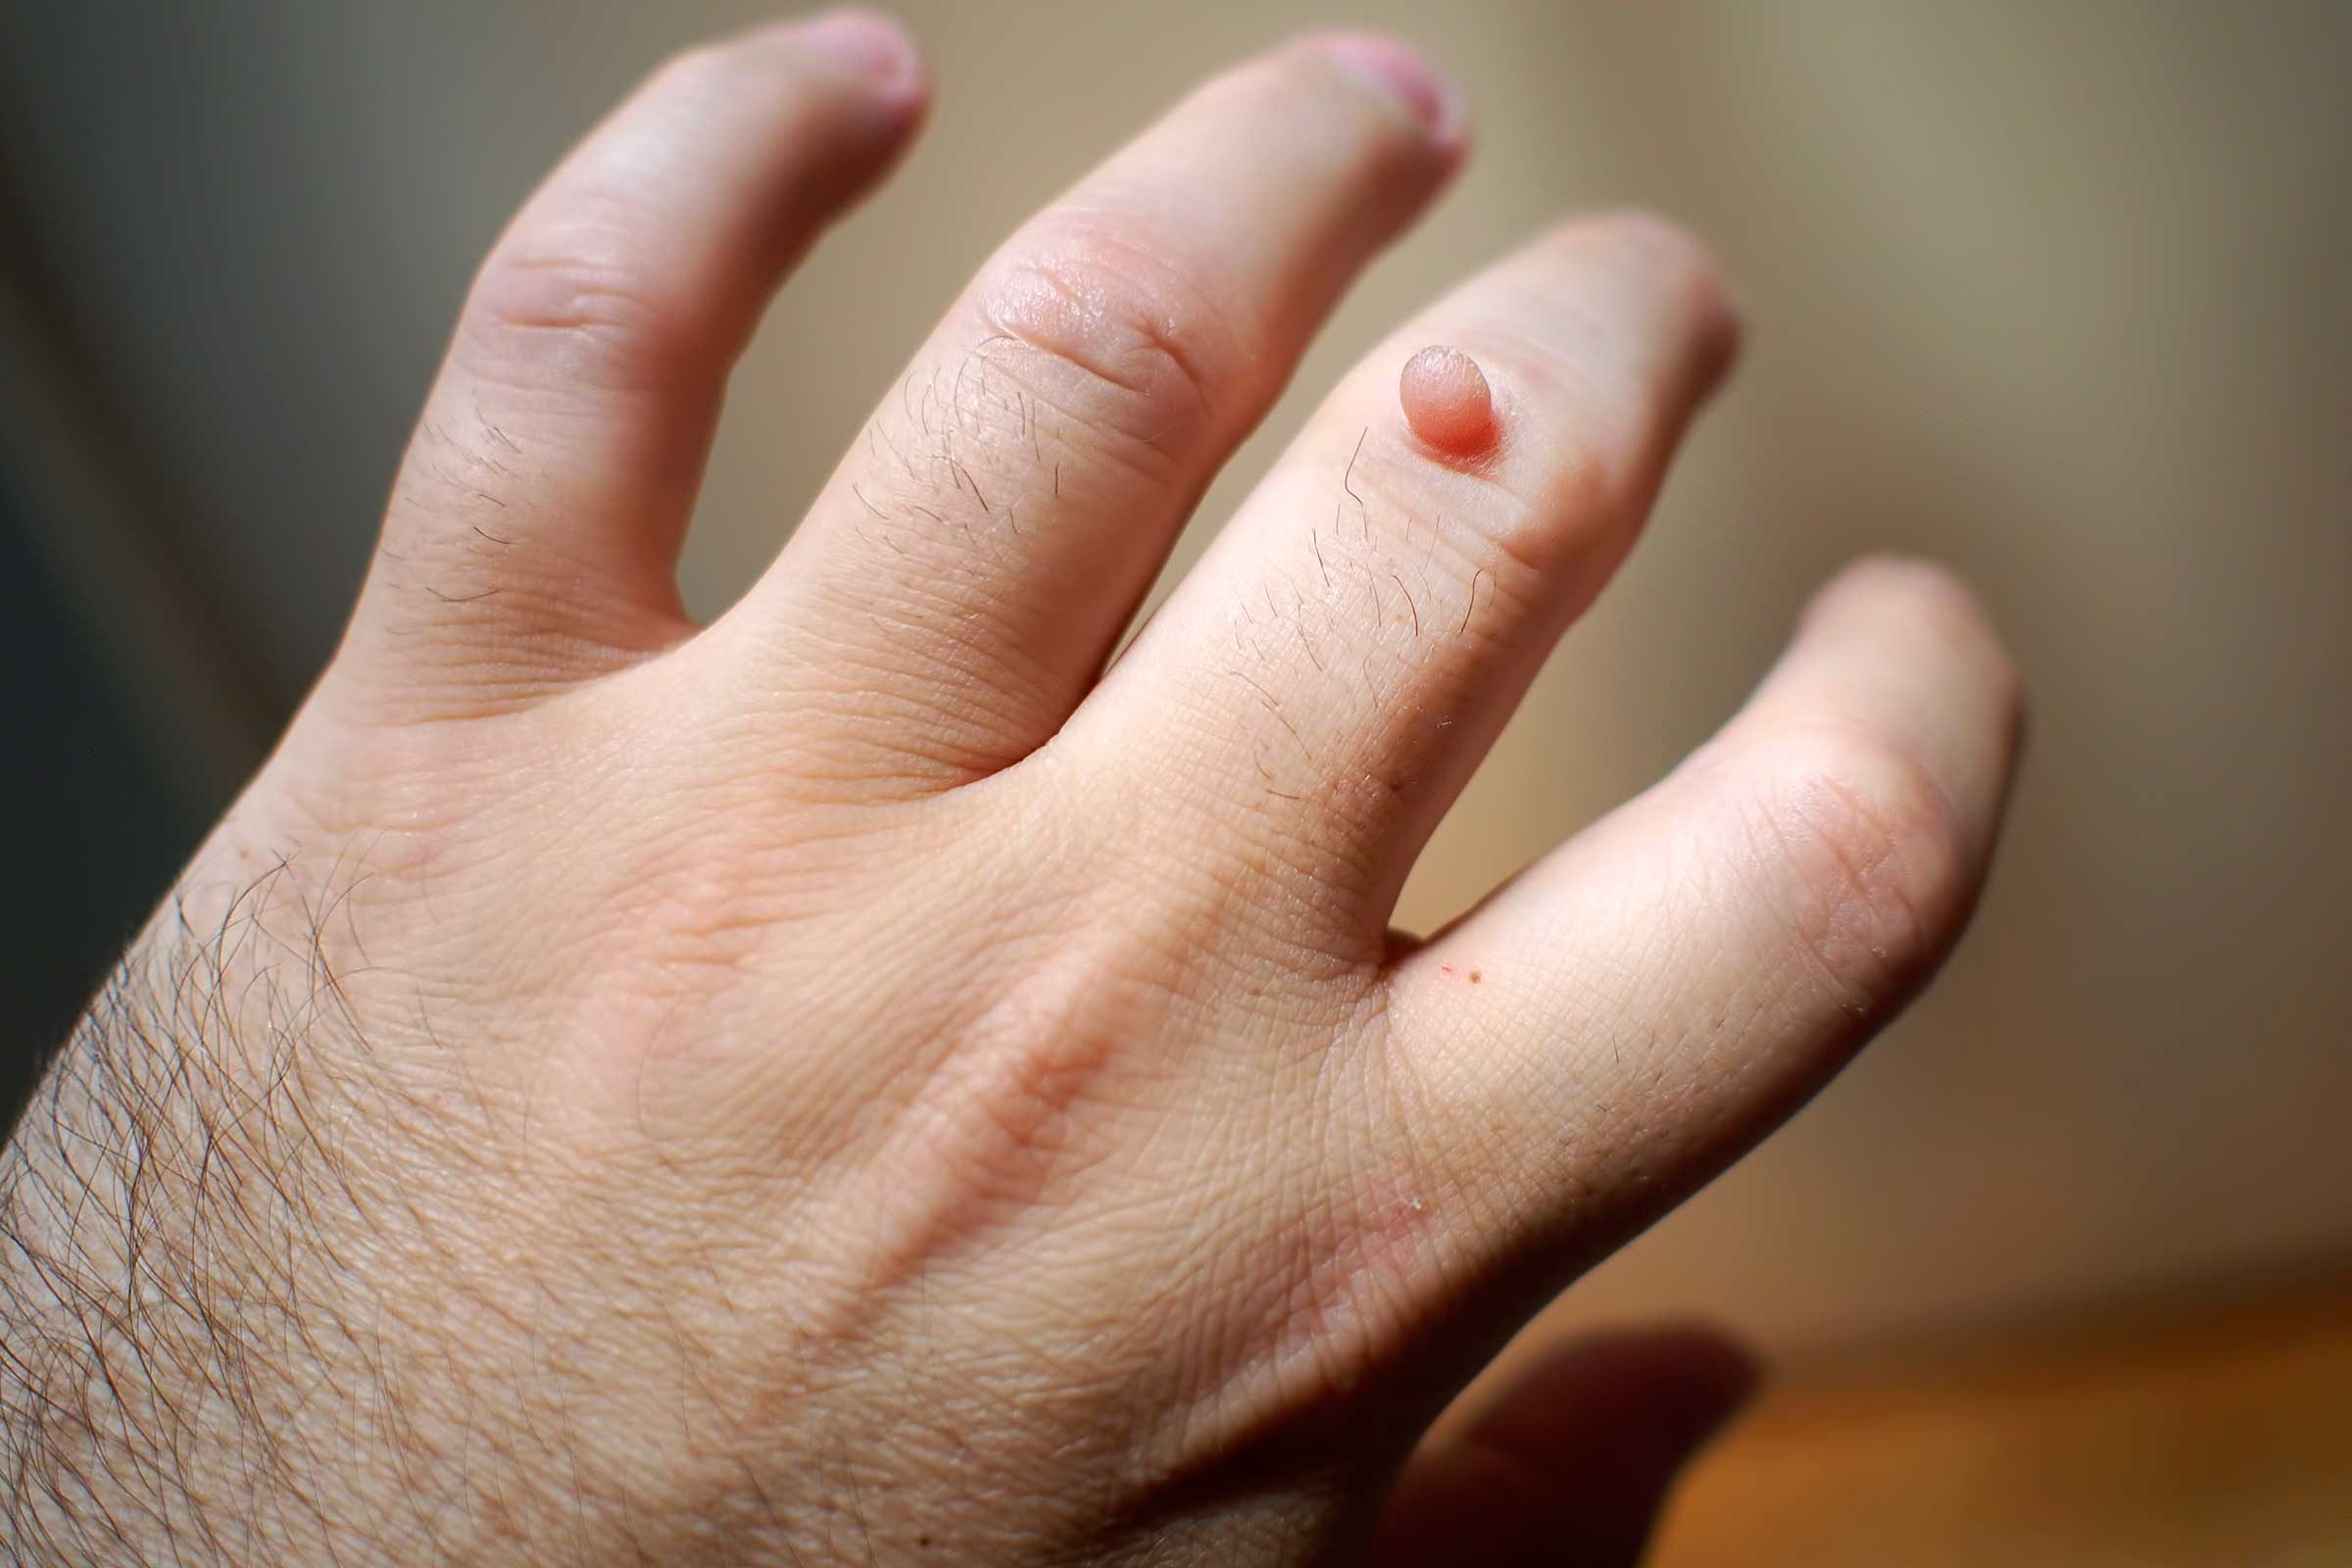 warts on hands only